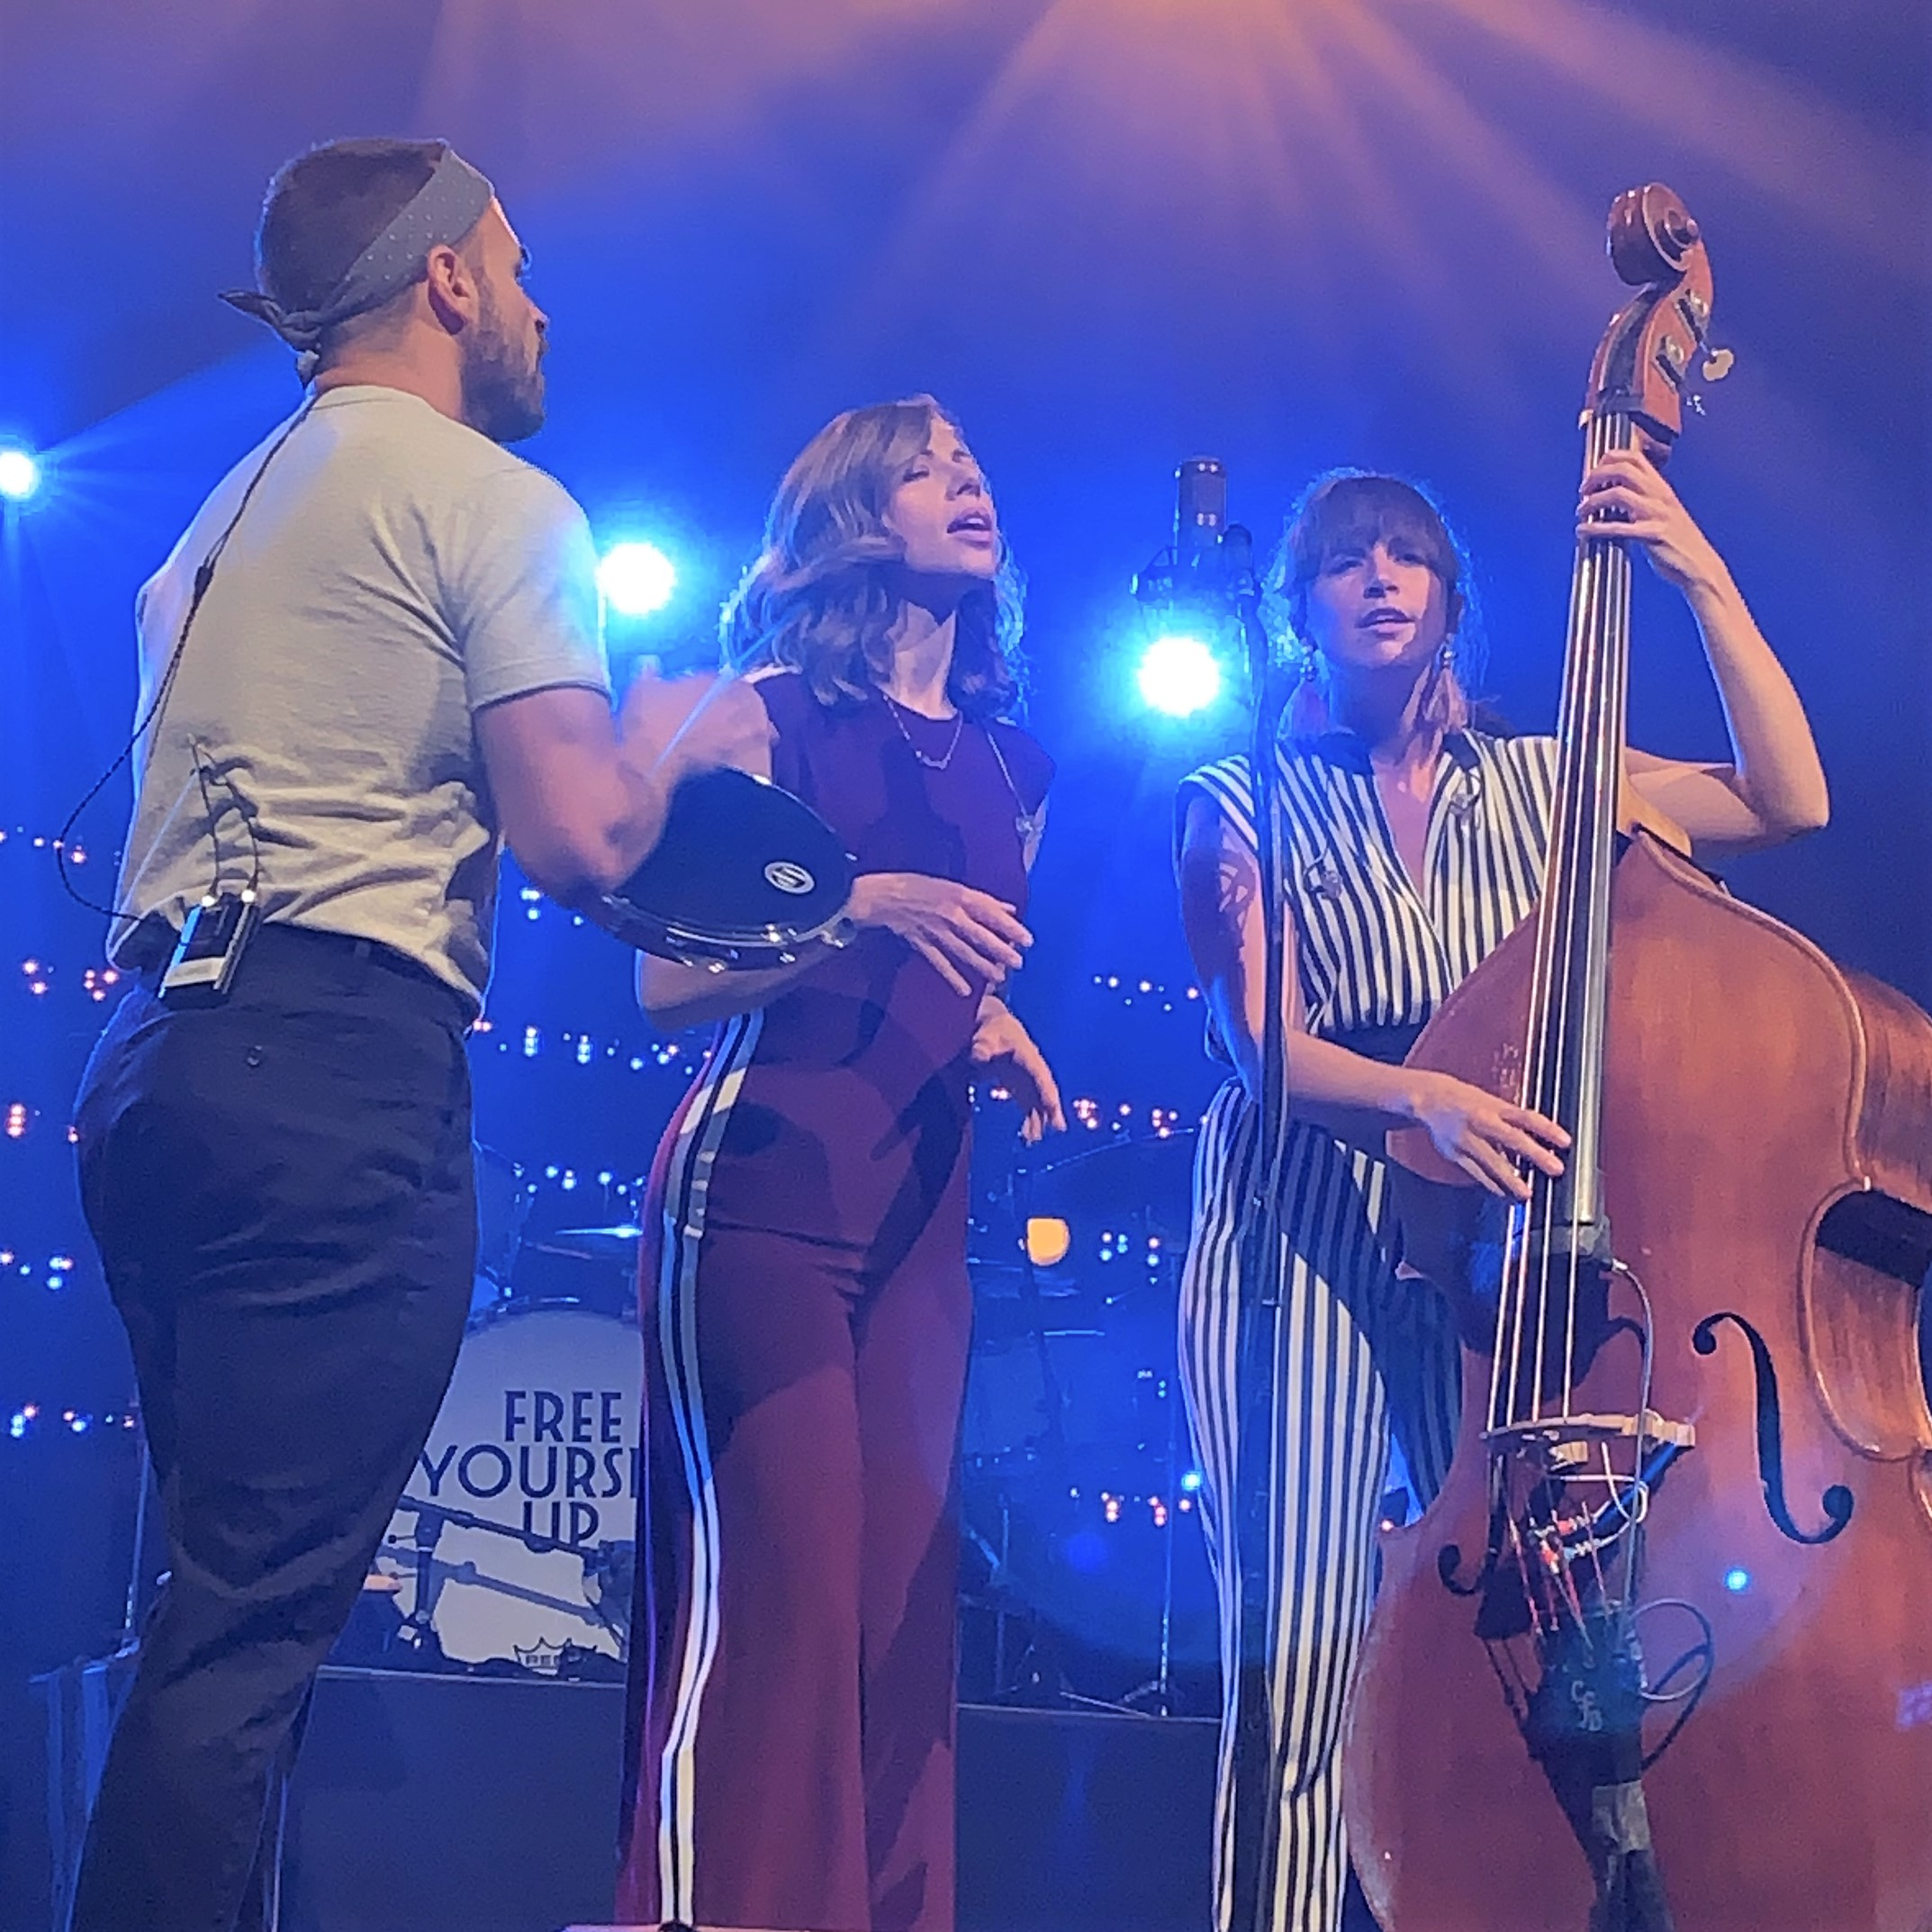 Photo of Rachael Price, Mike Calabrese, and Bridget Kearney of Lake Street Dive, photo by Beth Nault-Warner